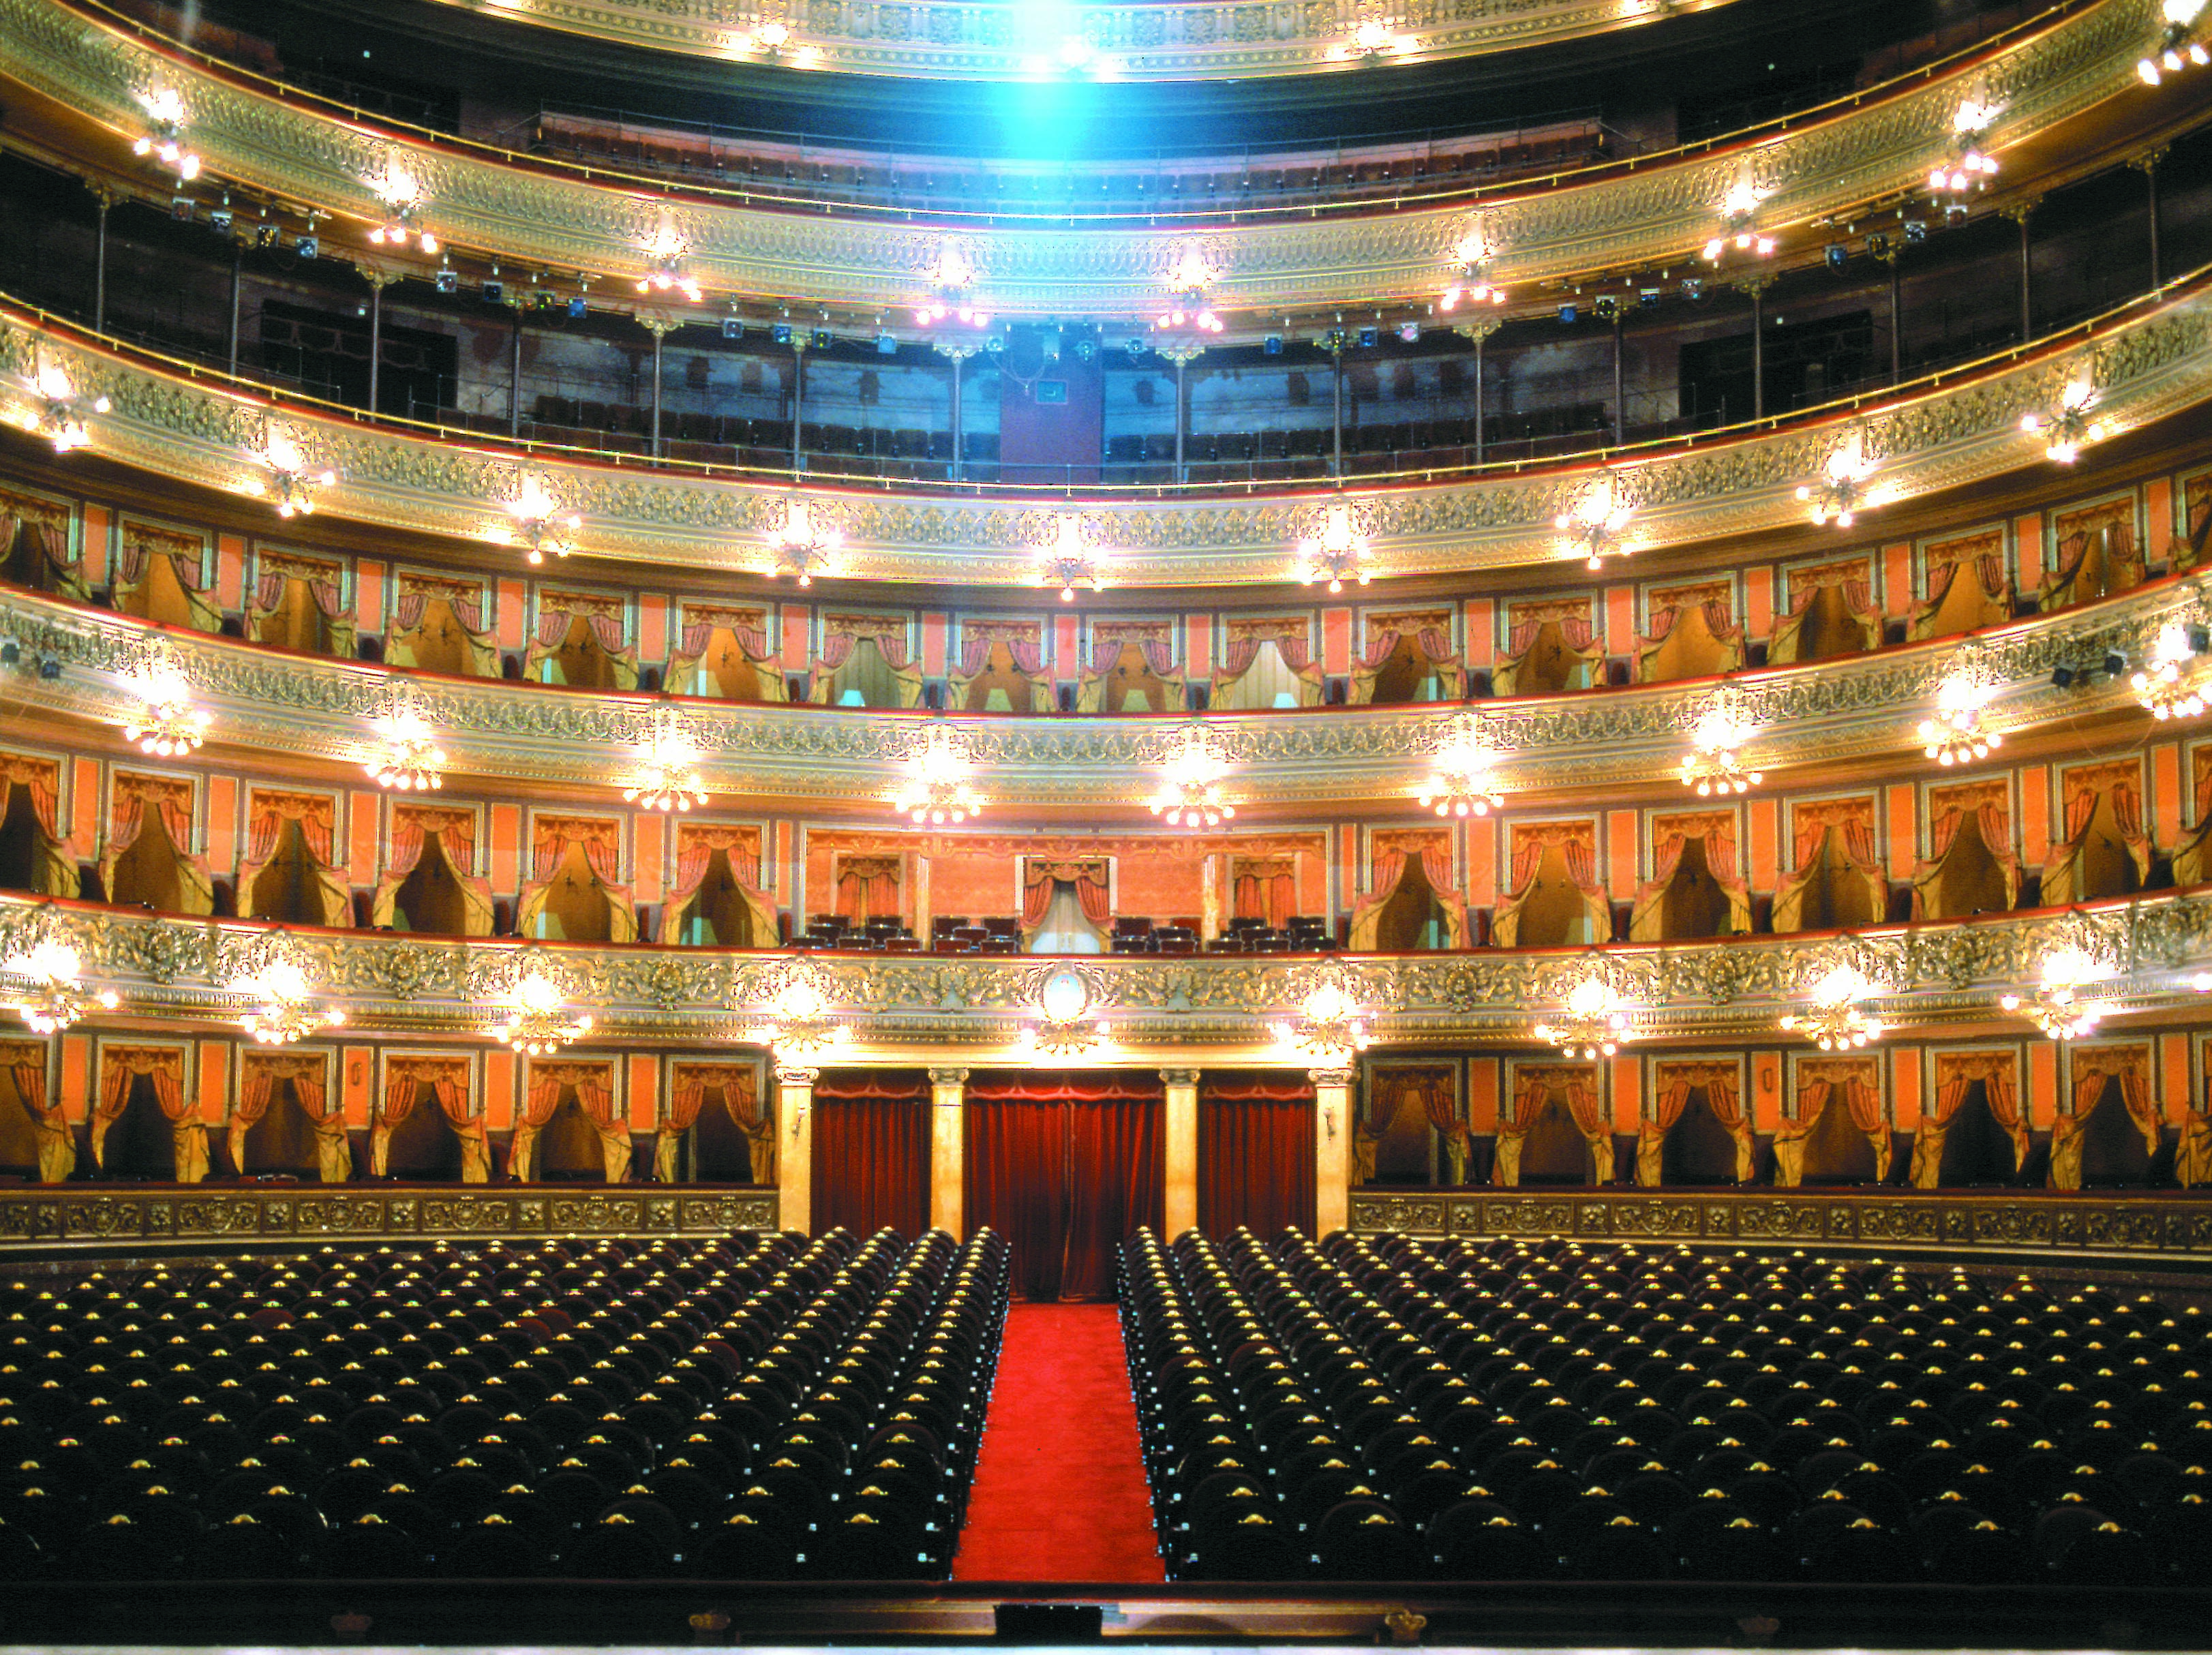 /wp-content/uploads/itineraries/Argentina/BA Foodie/Teatro Colon PRINCIPAL.jpg